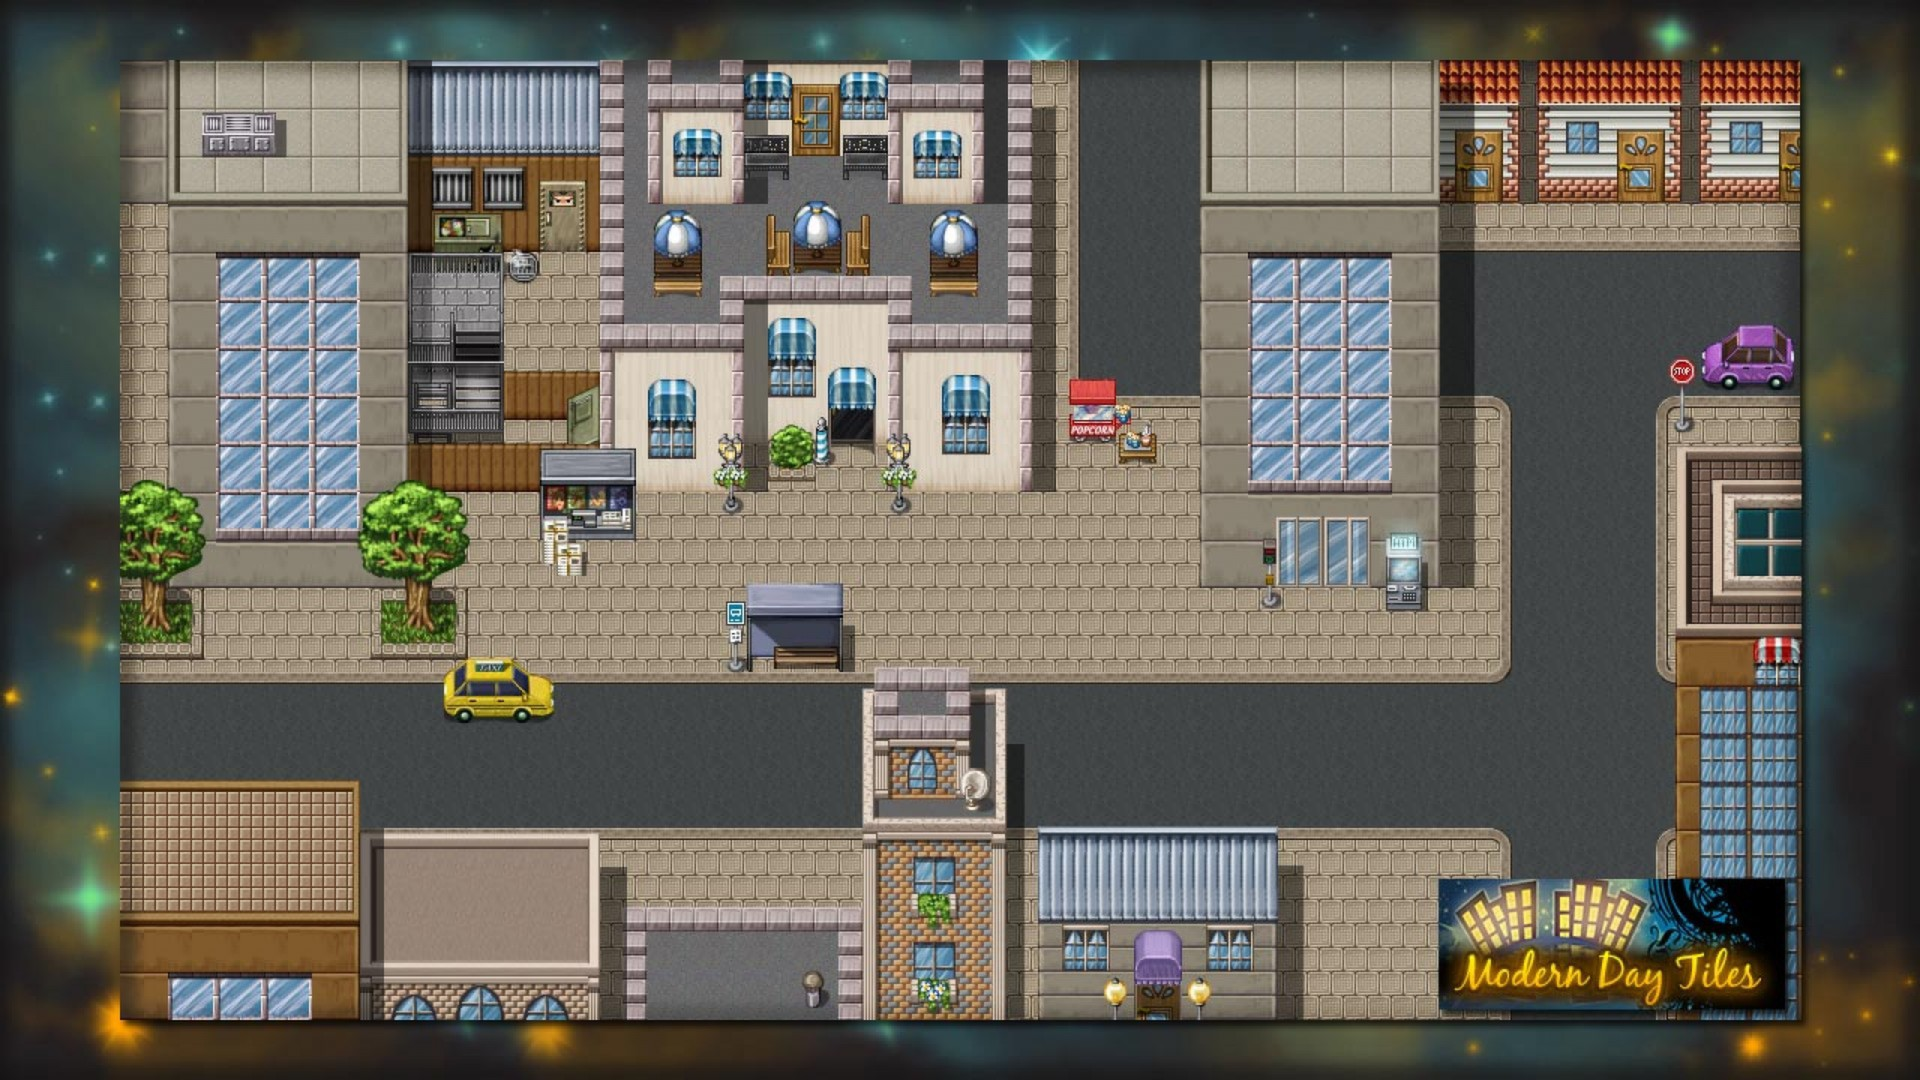 Rpg maker xp graphic animation role-playing game role-playing.